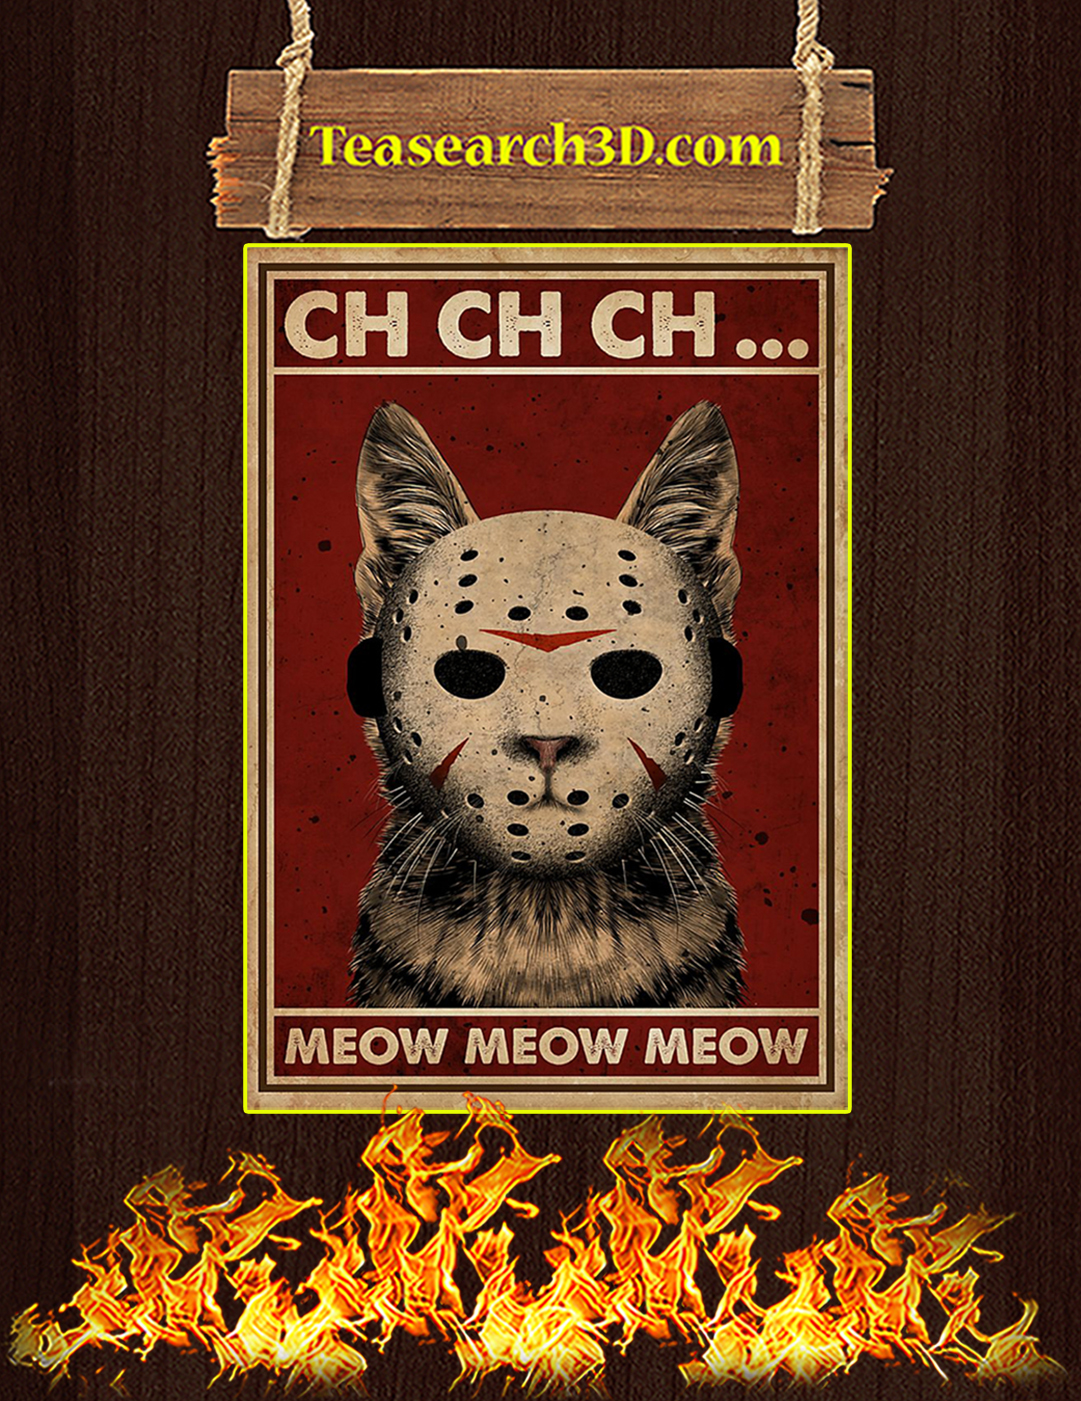 Cat ch ch ch meow meow meow poster A2